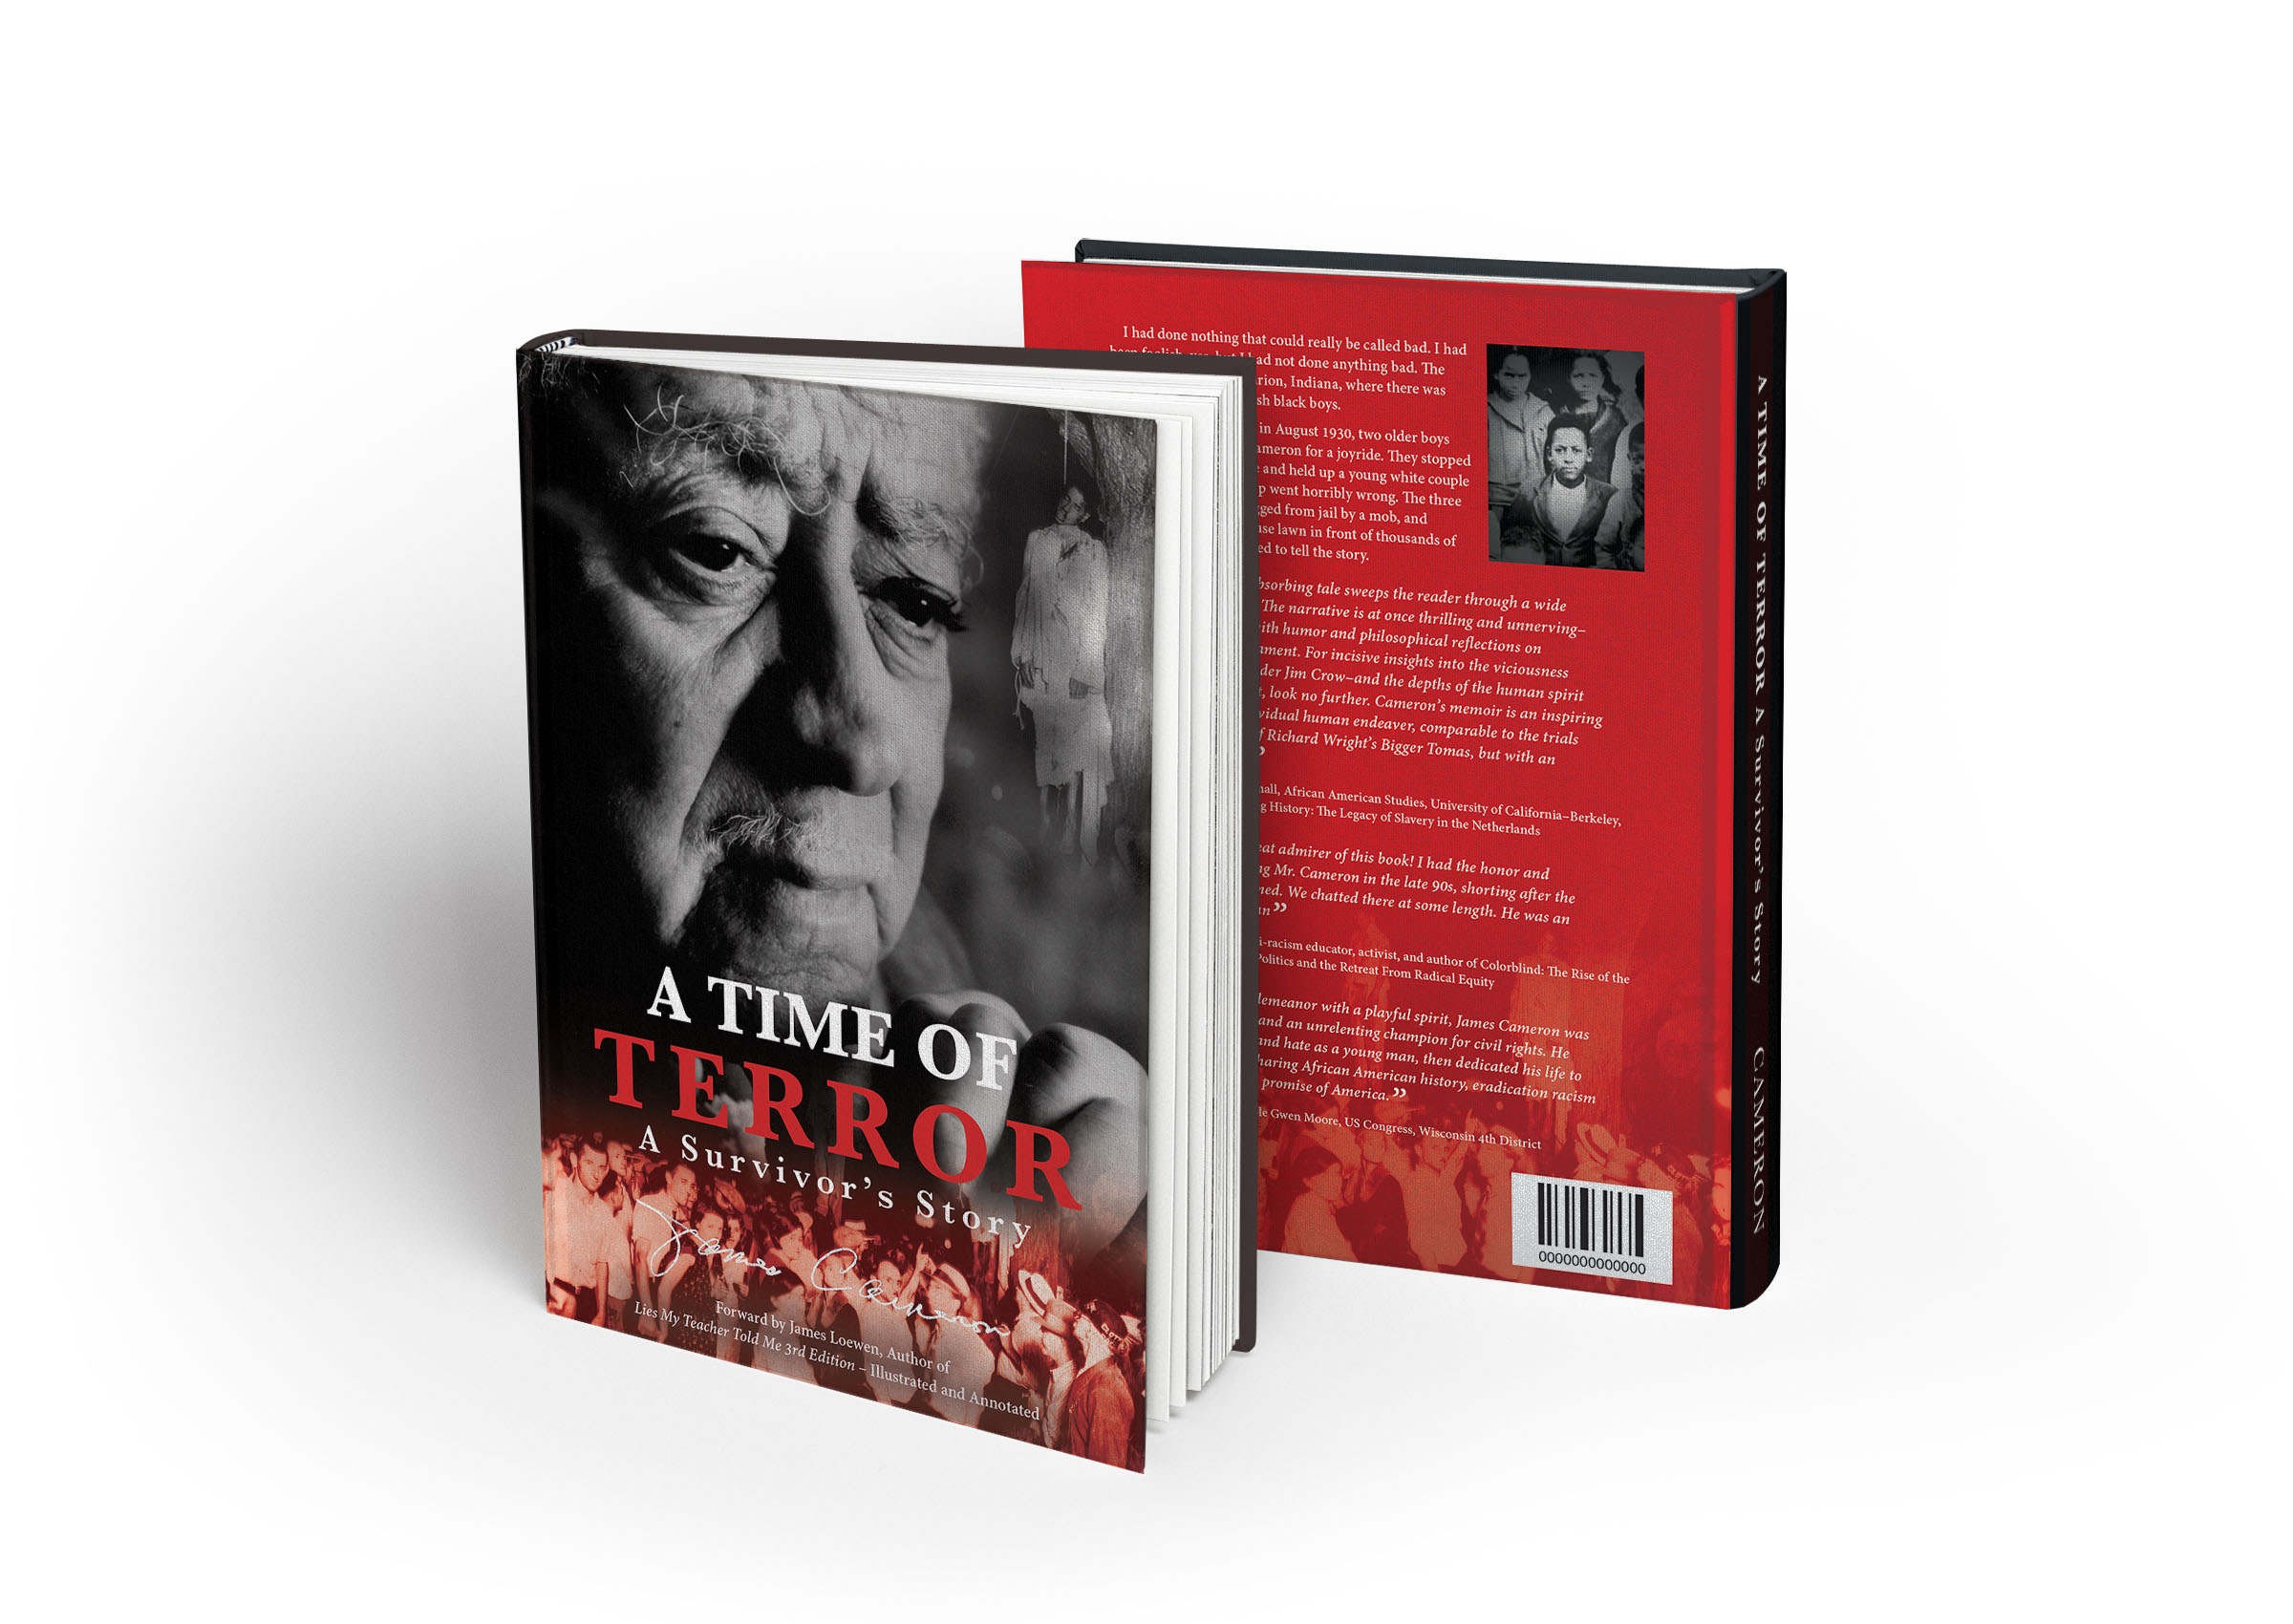 A Time of Terror - Book cover design